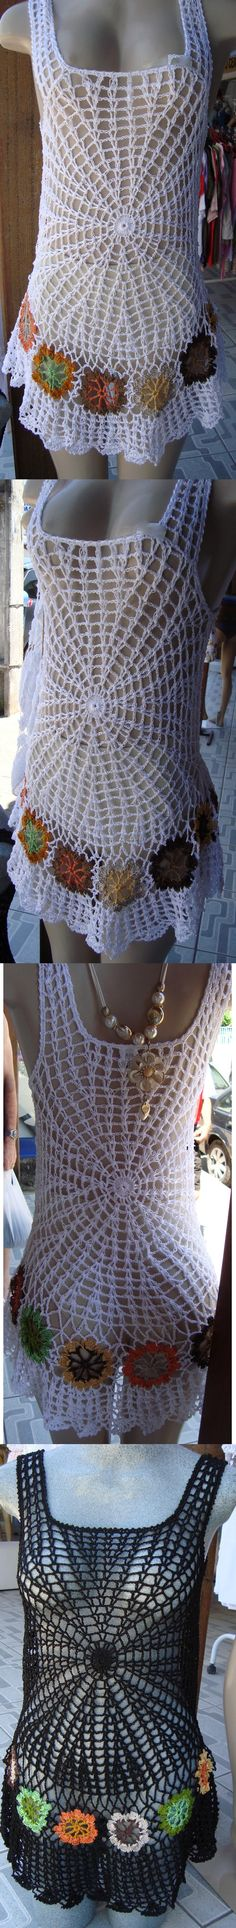 Would make a cute bathing suit coverup.